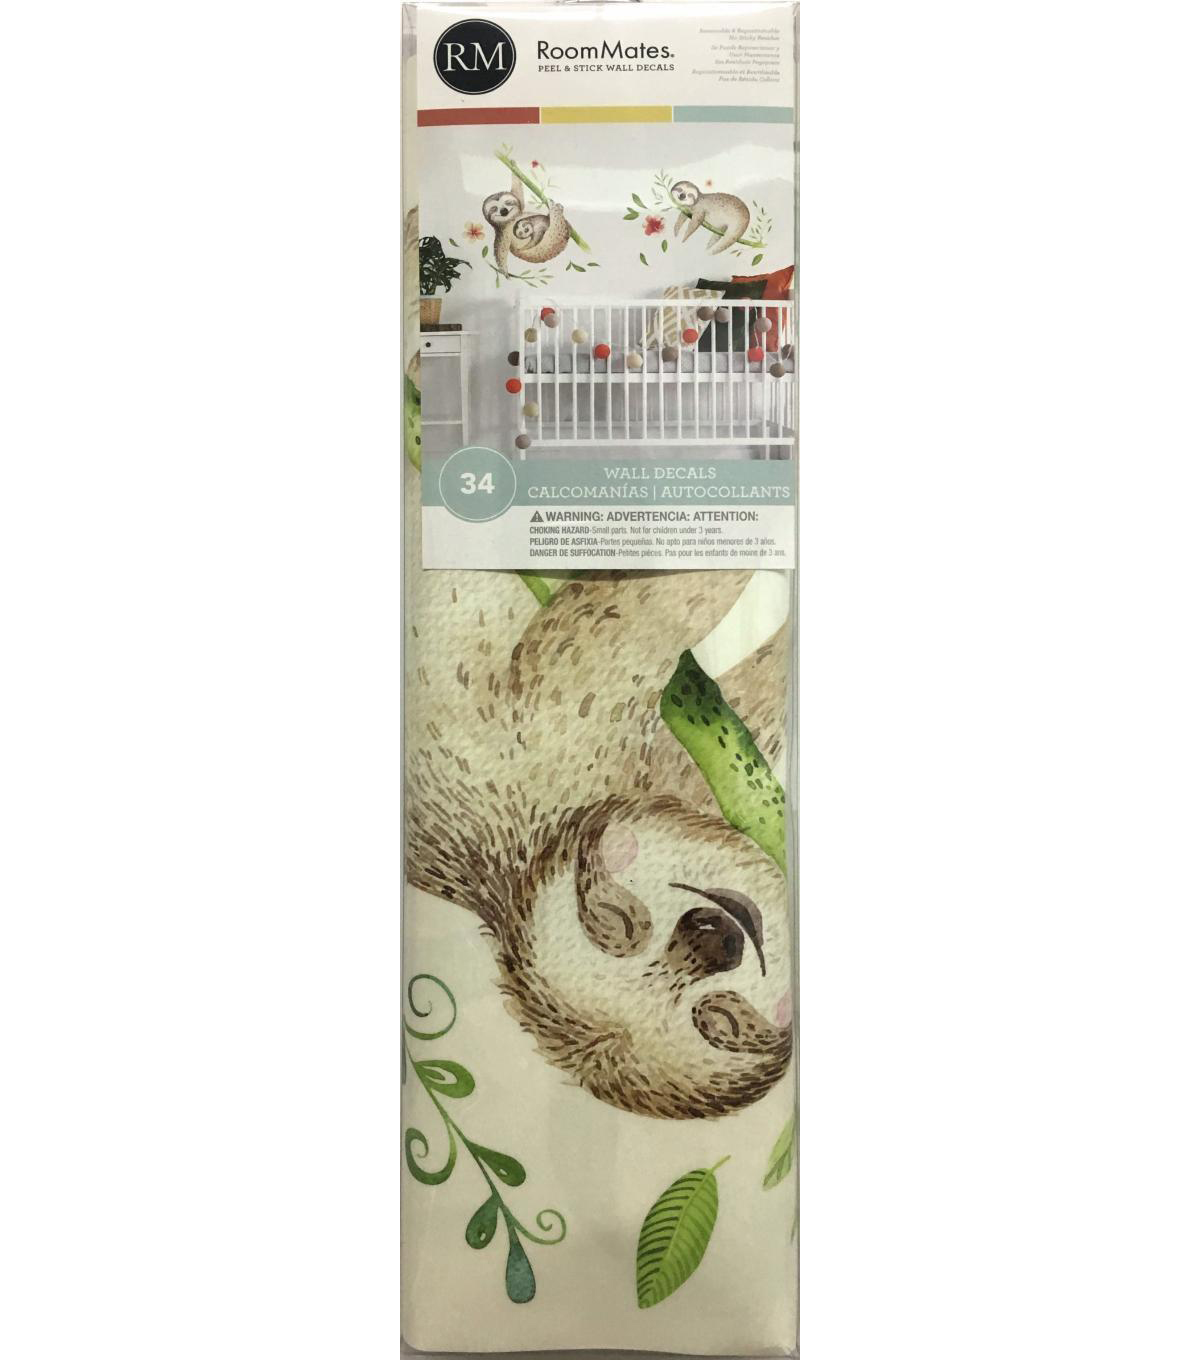 York Wallcoverings Wall Decals-Lacy Sloth